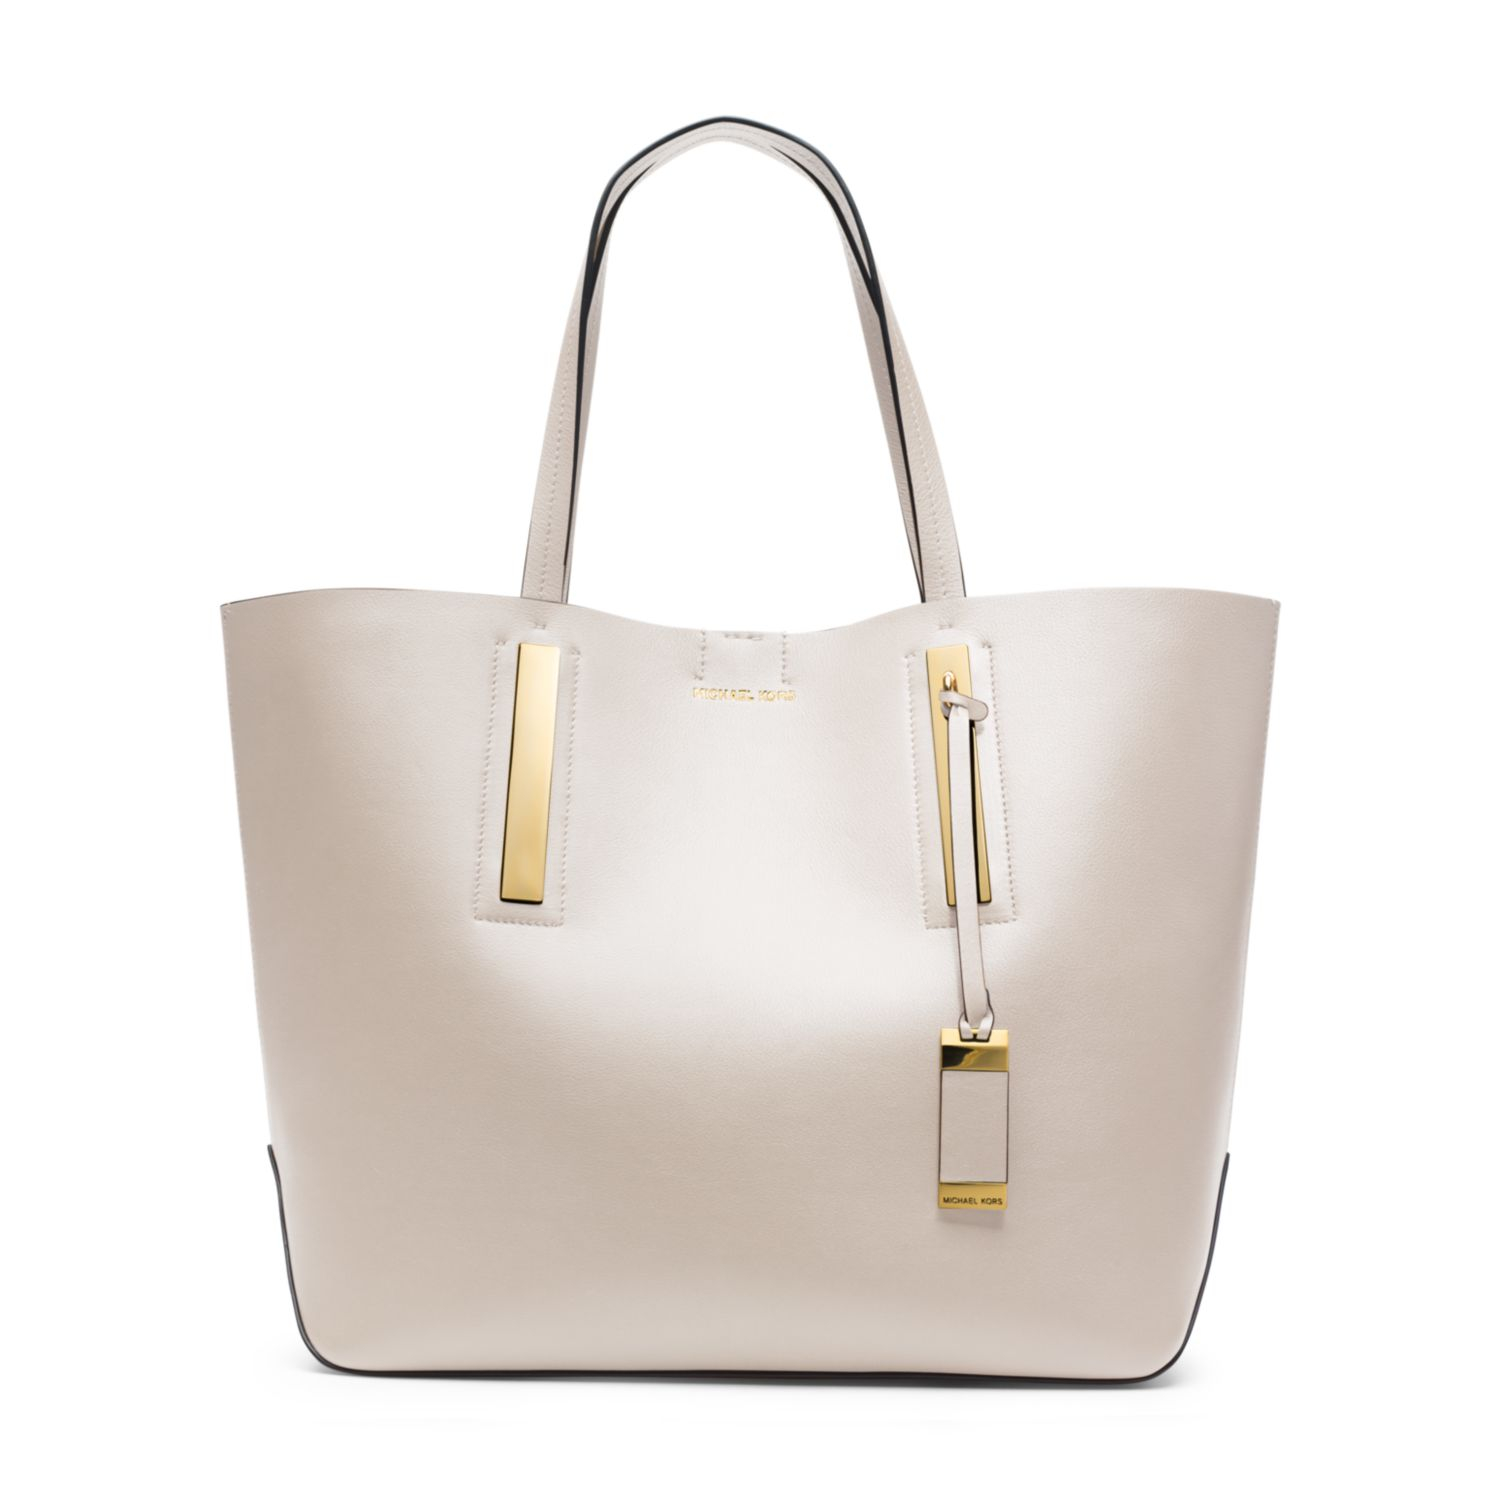 c8d87e983903 Michael Kors Jaryn Calf Leather Tote in Natural - Lyst